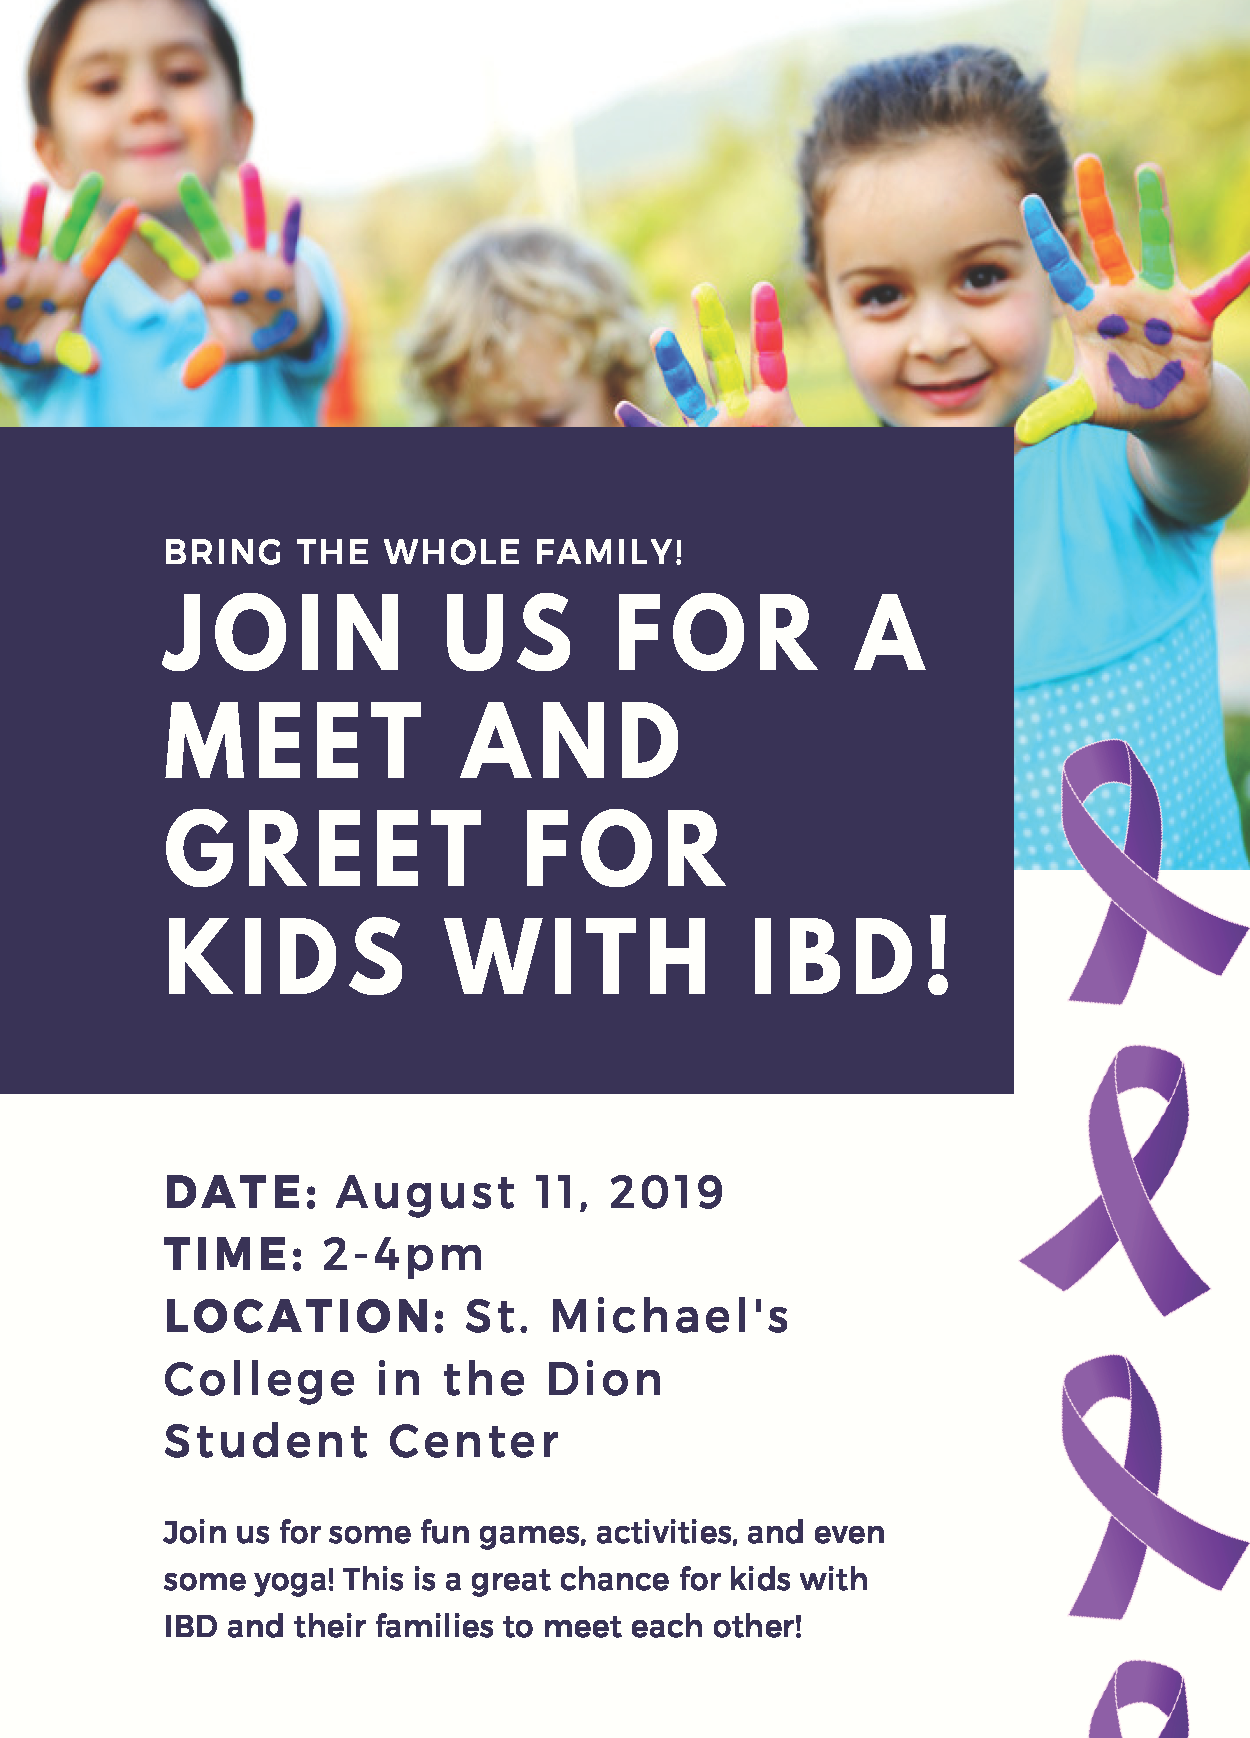 Pedi_IBD_Meet_and_Greet_Flyer_(No_RSVP_Line).png